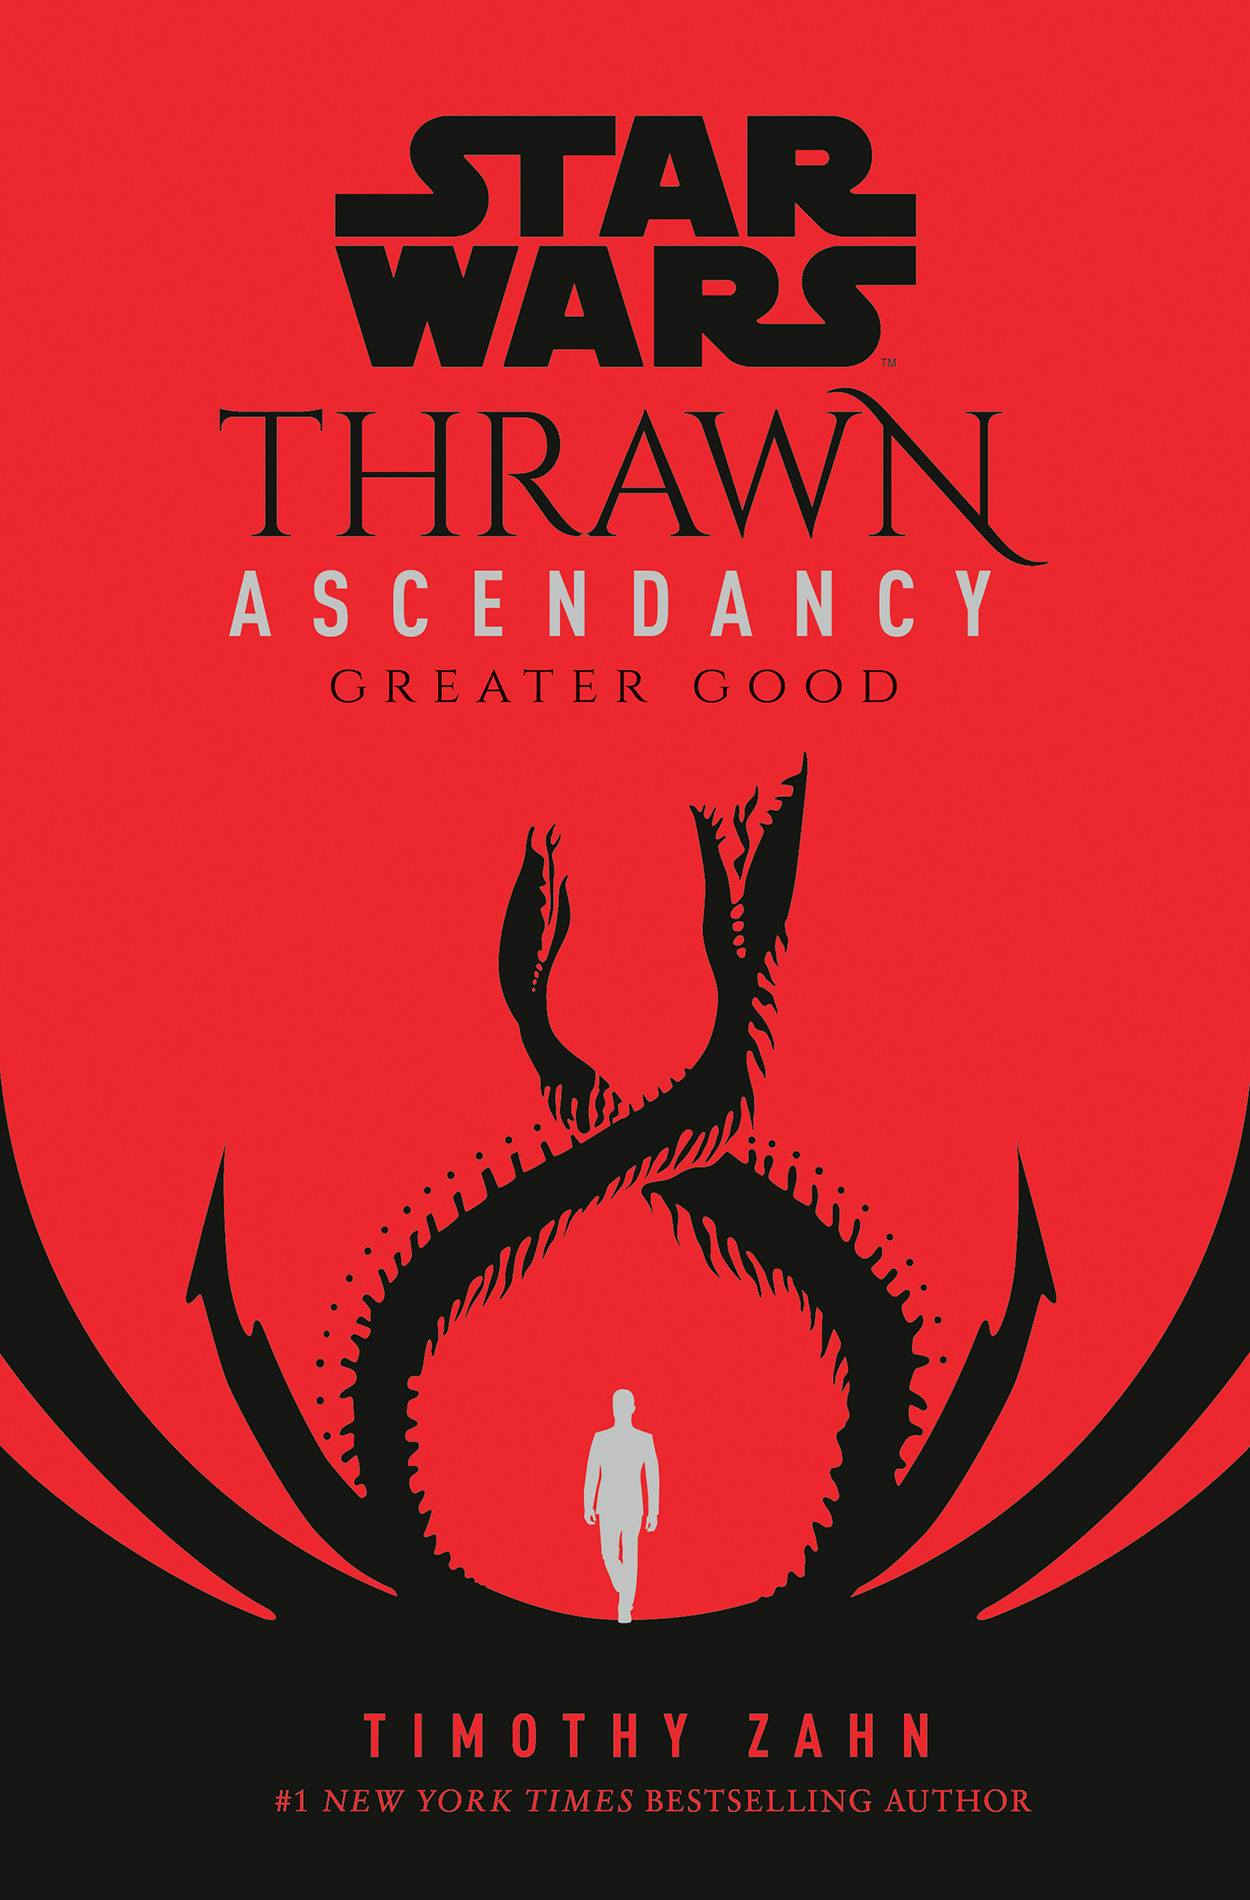 Star Wars Thrawn: Ascendancy - Greater Good